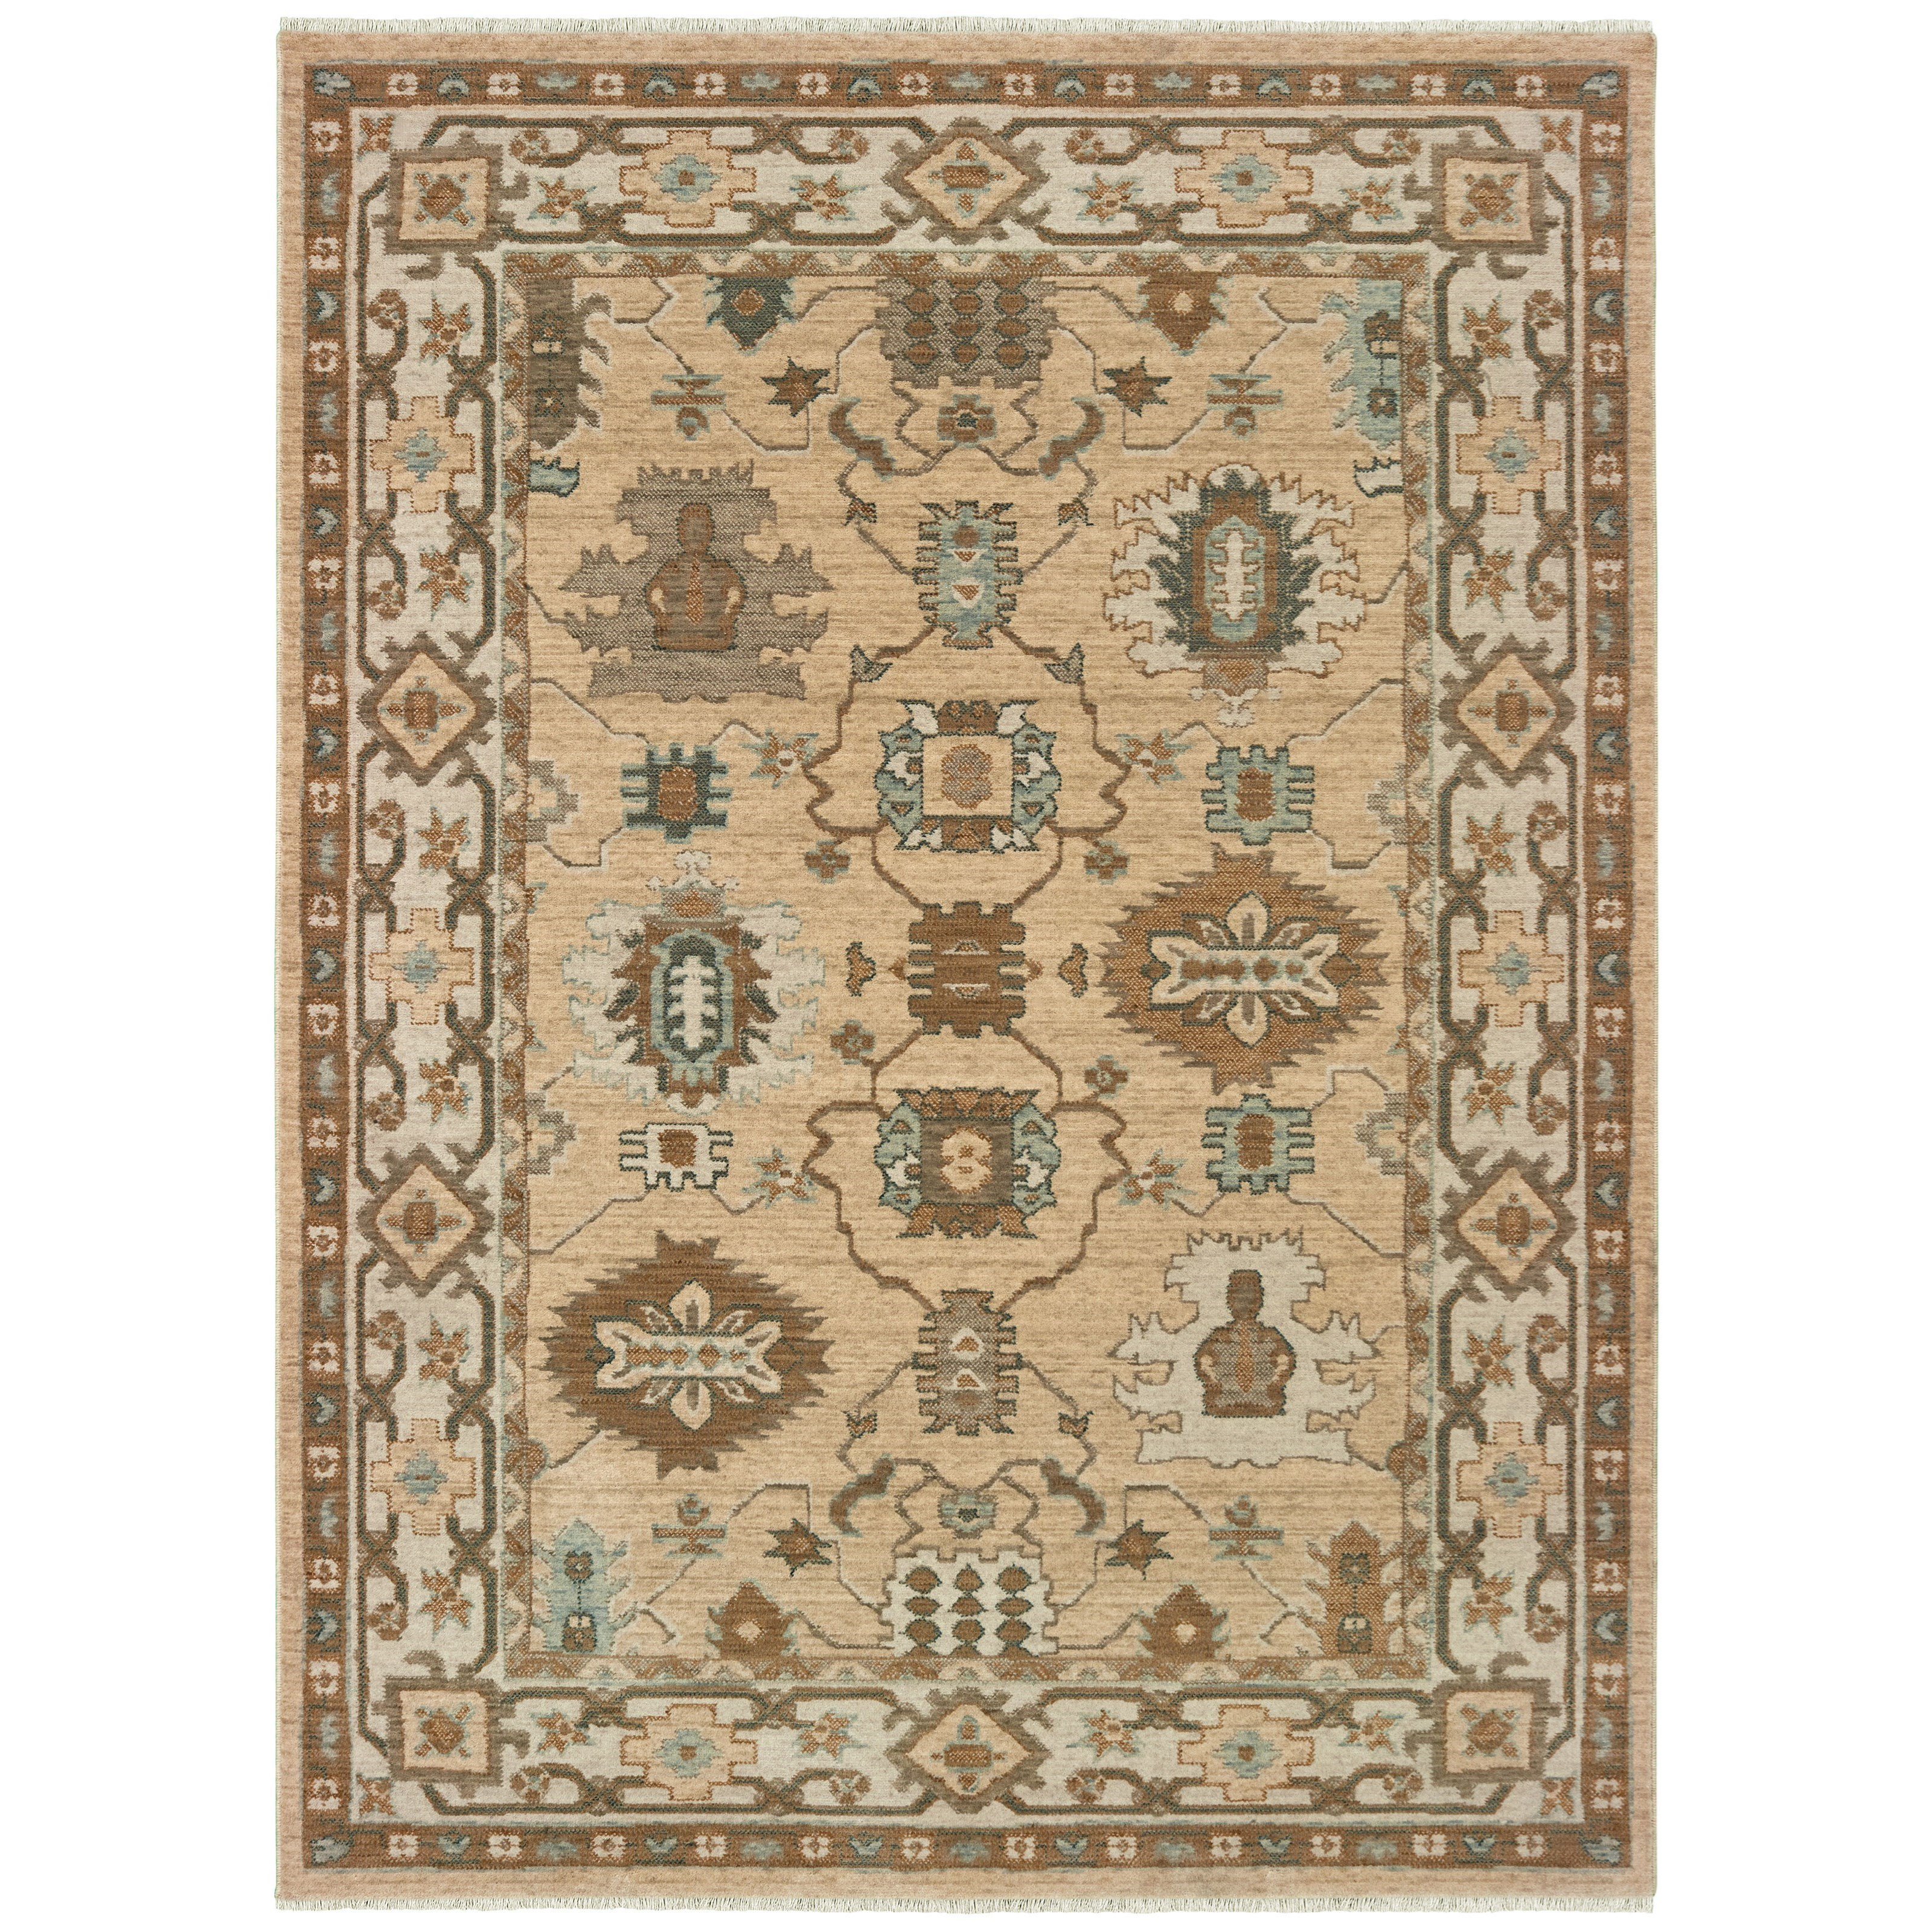 2' X  3' Rectangle Rug